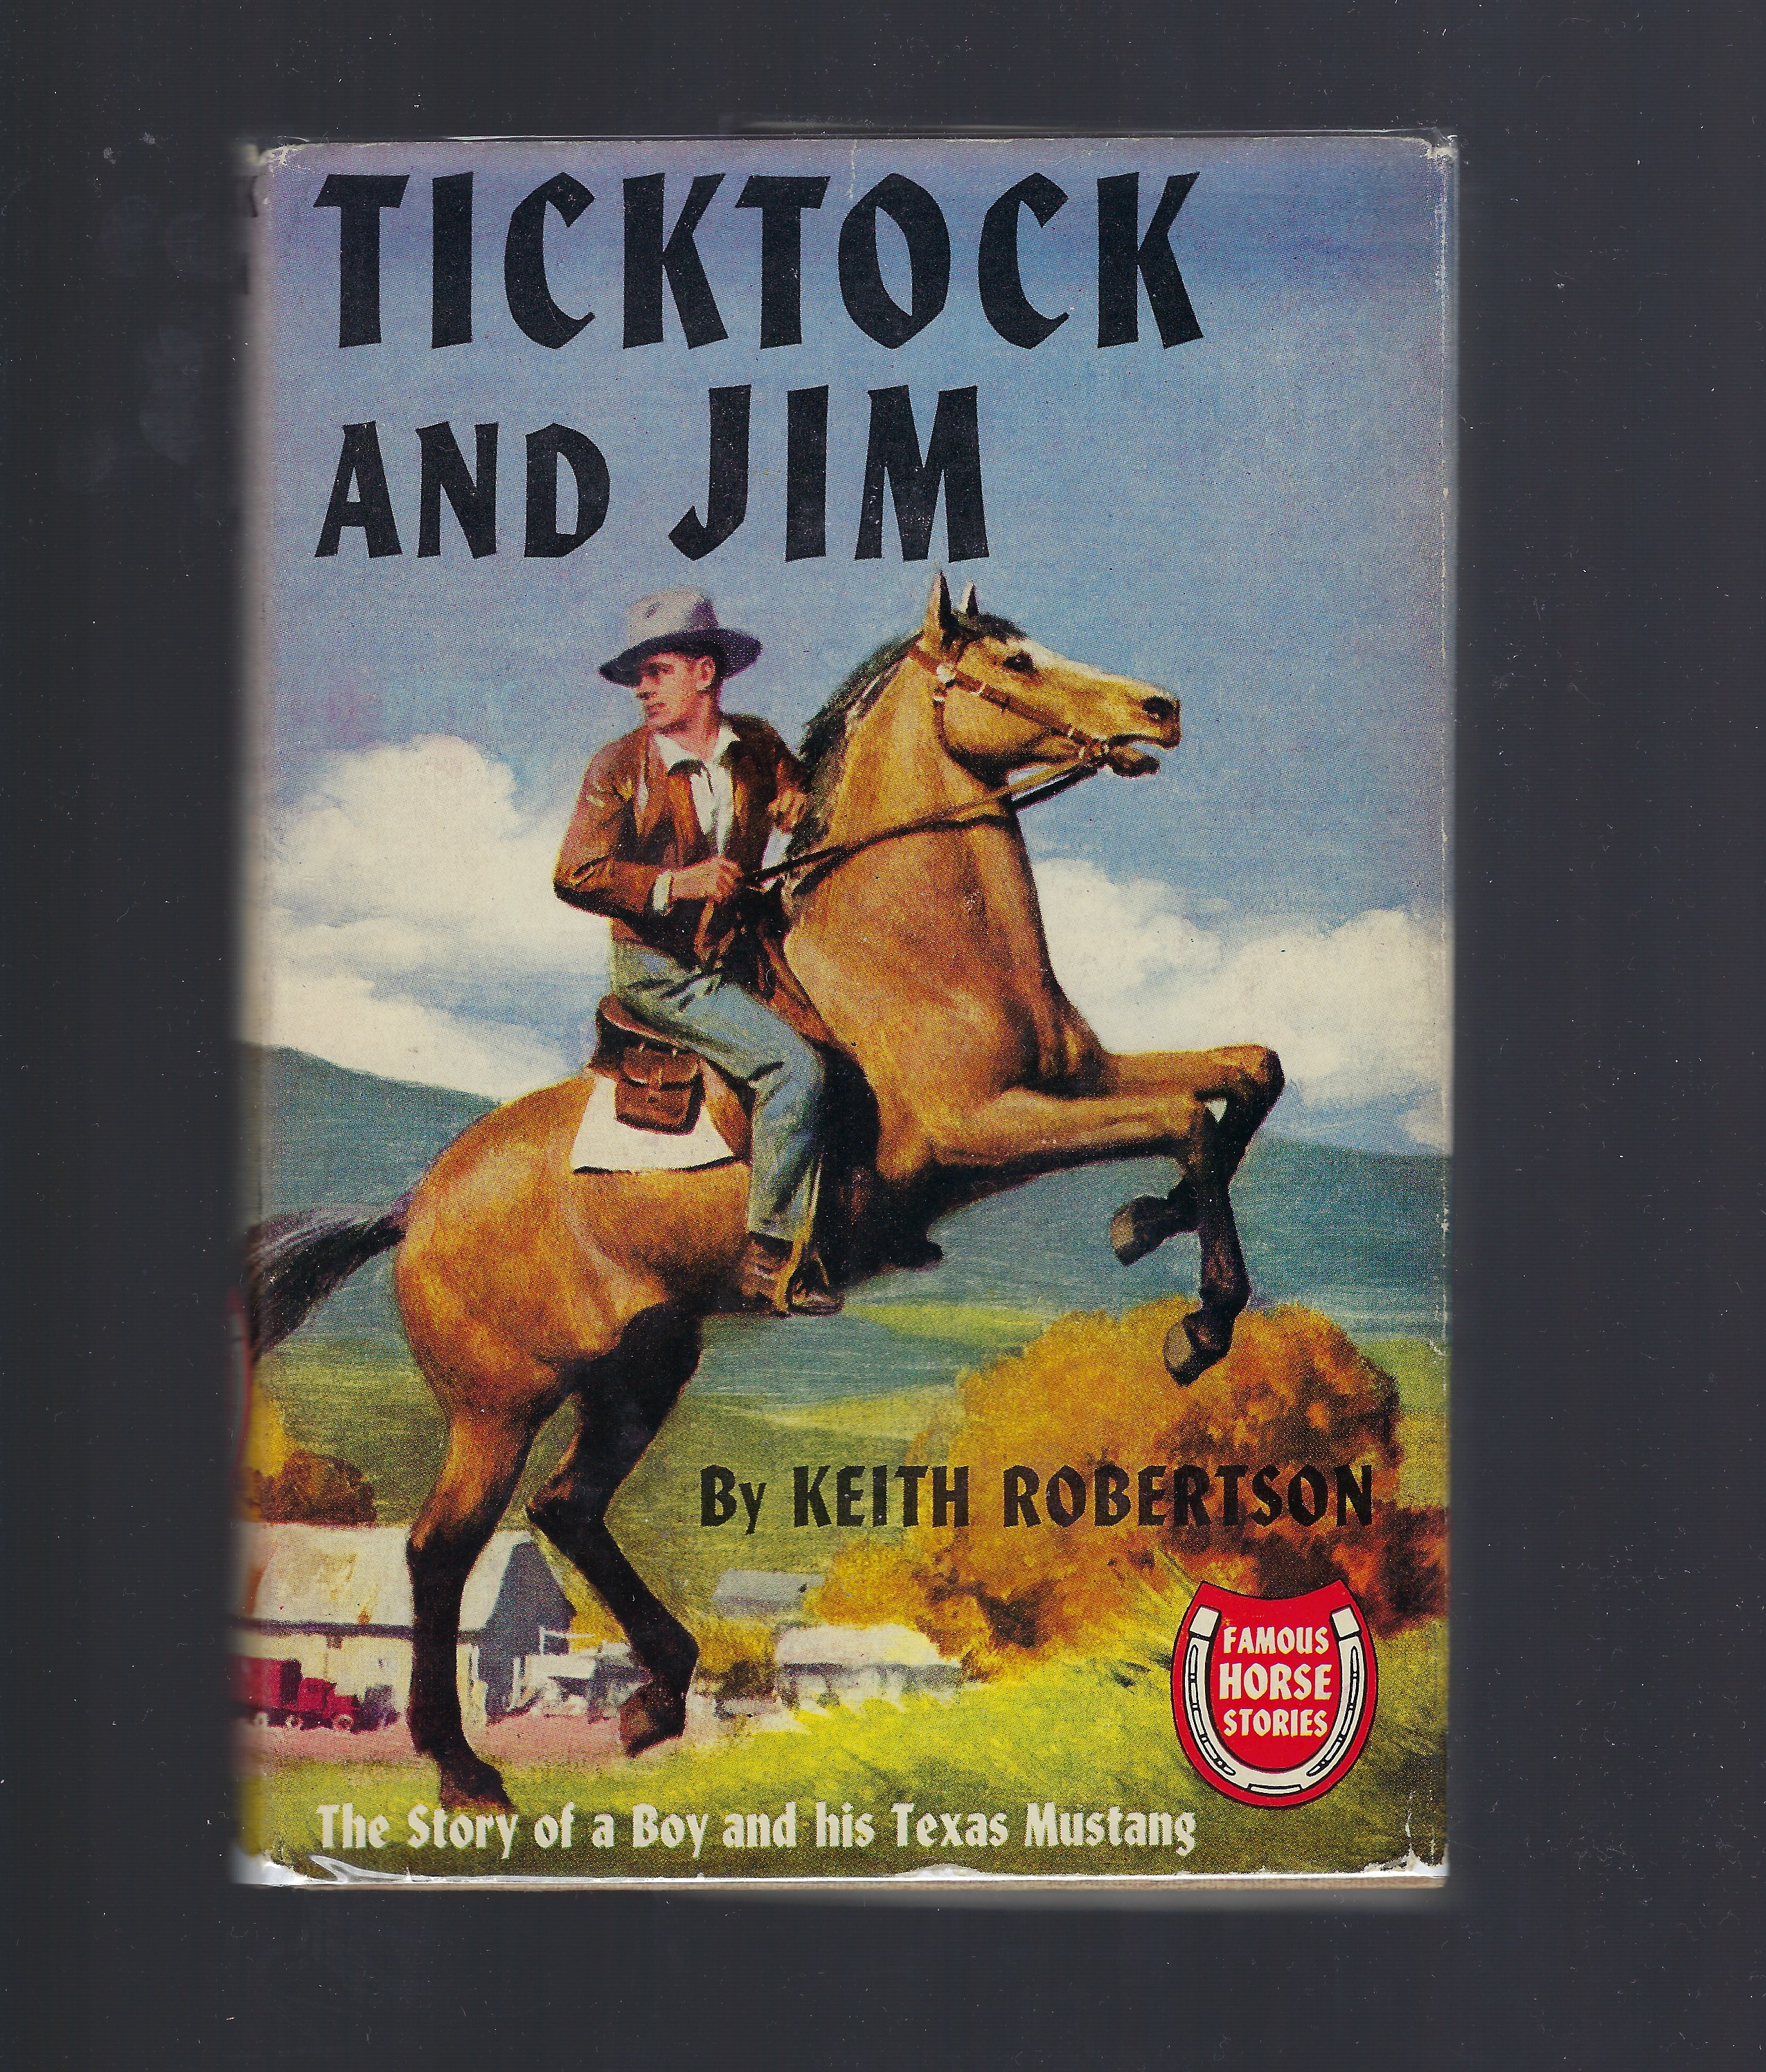 Ticktock and Jim (Famous Horse Stories) HB/DJ, Keith Robertson, Wesley Dennis [Illustrator]